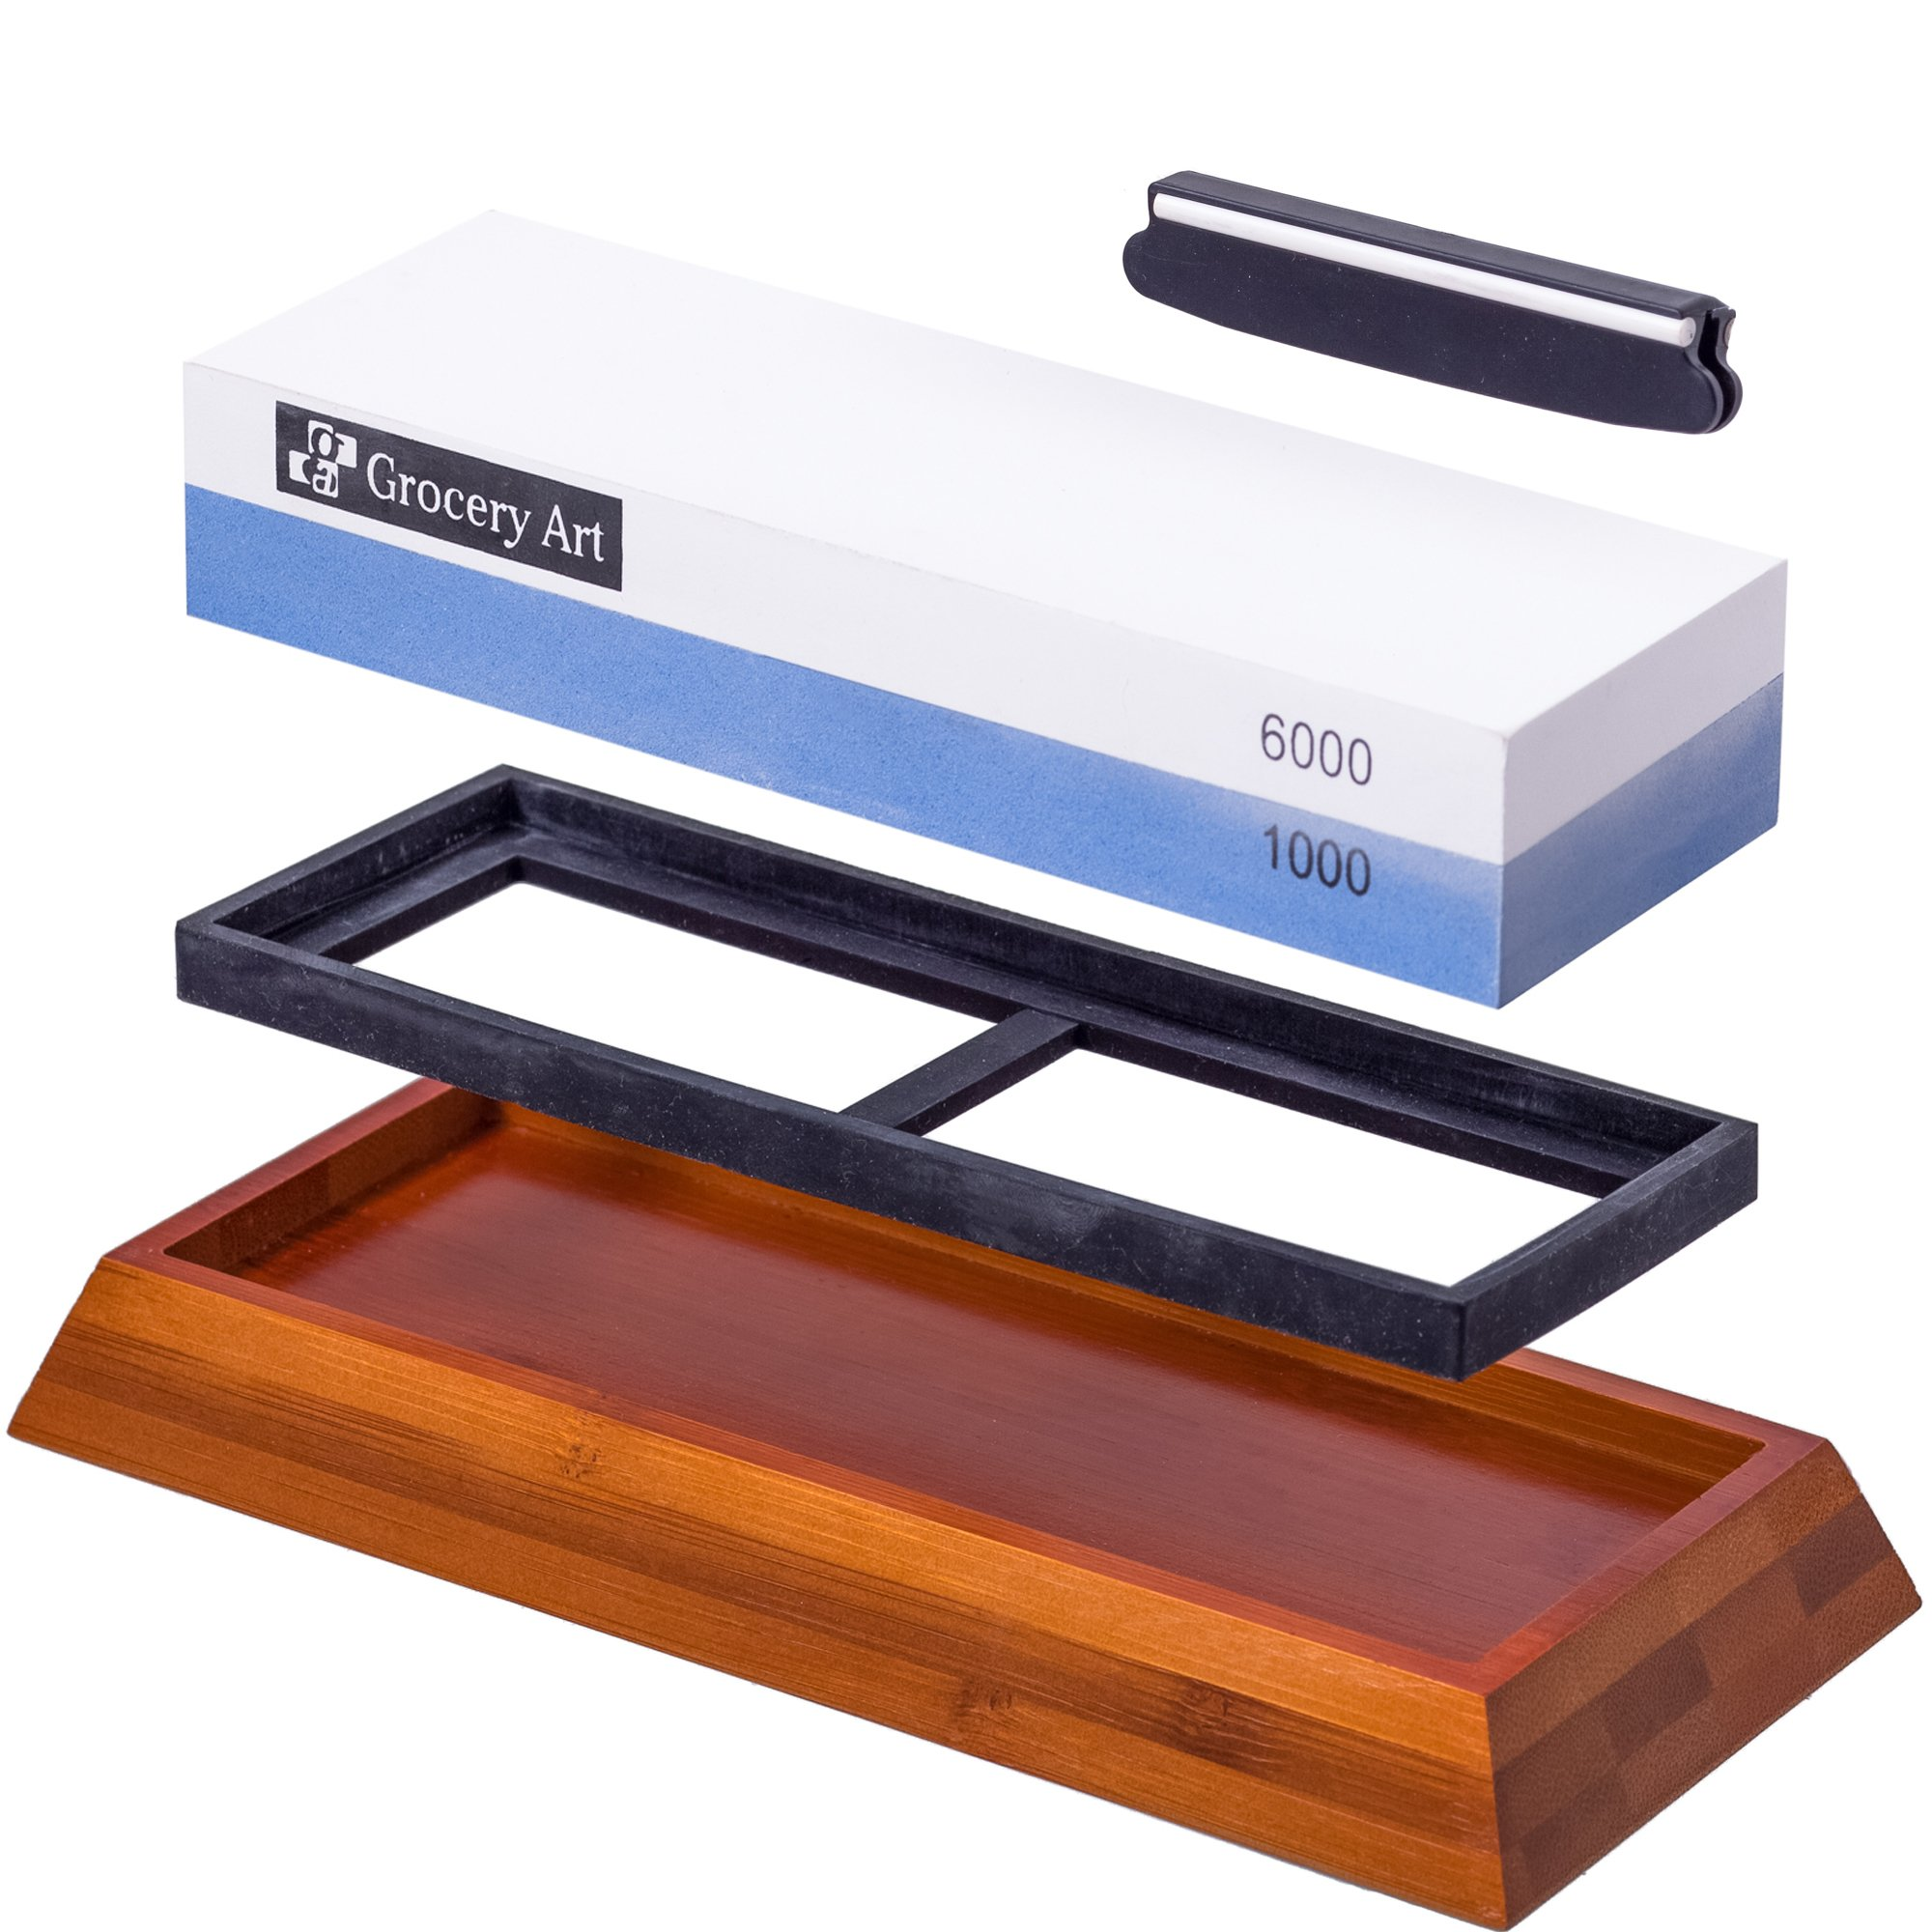 Whetstone Knife Sharpening Stone   Waterstone Knife Sharpener 1000-6000  Grit with Non-Slip Bamboo Base and Angle Guide   Best Wet Stone Kitchen  Knives ...